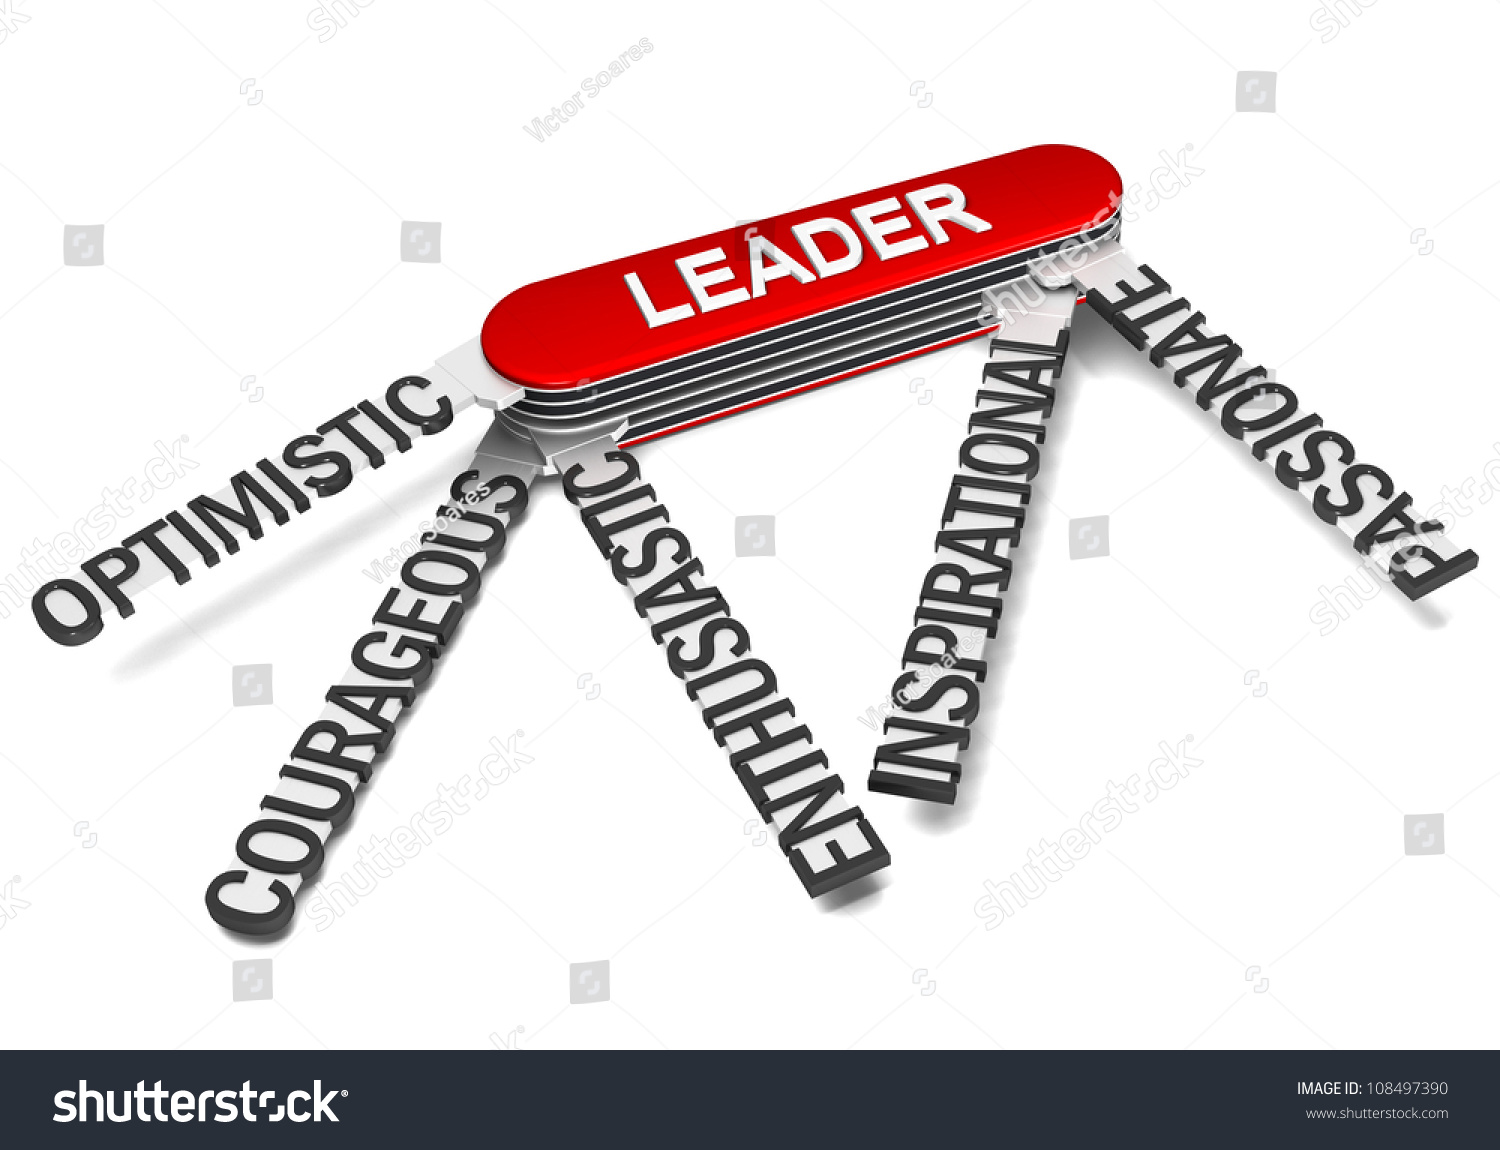 the important characteristics of leadership What are the qualities and characteristics of the very best team members an important characteristic of effective work teams is the shared capacity leadership is a quality that everyone should process.